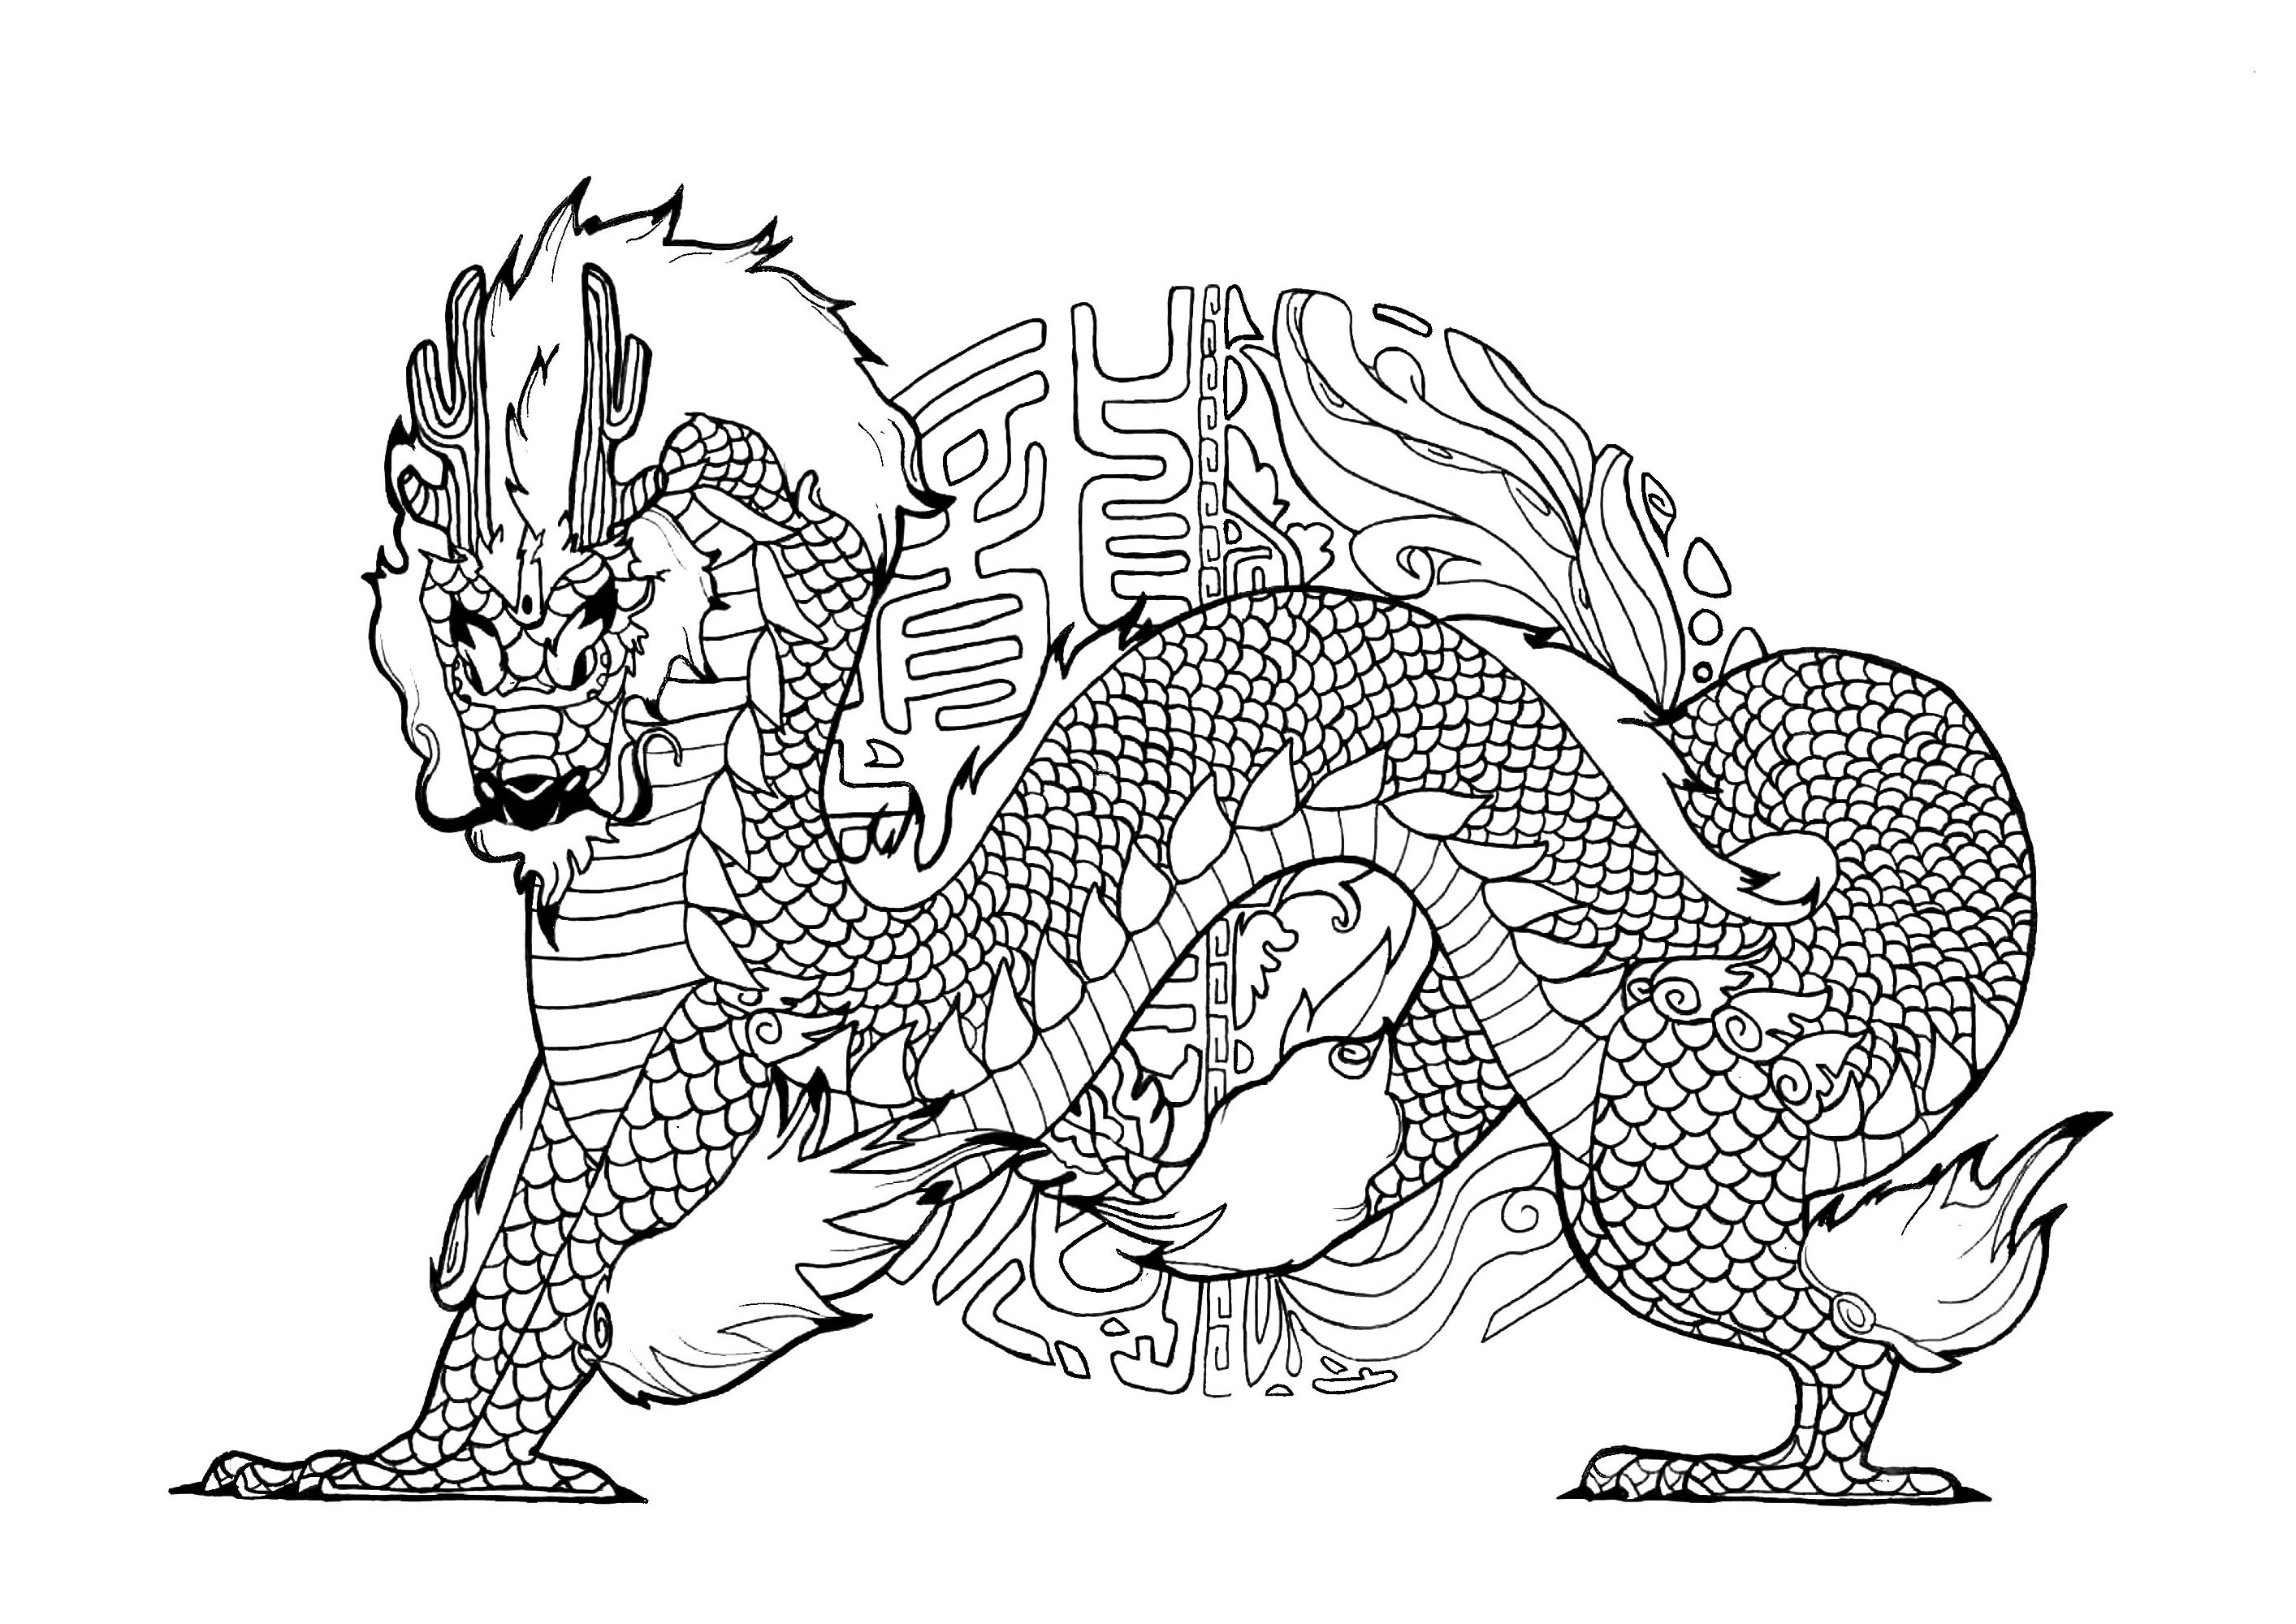 Big Dragon With Mandala Inspired By Chinese Calligraphy In Backgound Artist Pauline Dragon Coloring Page Dog Coloring Book Manga Coloring Book